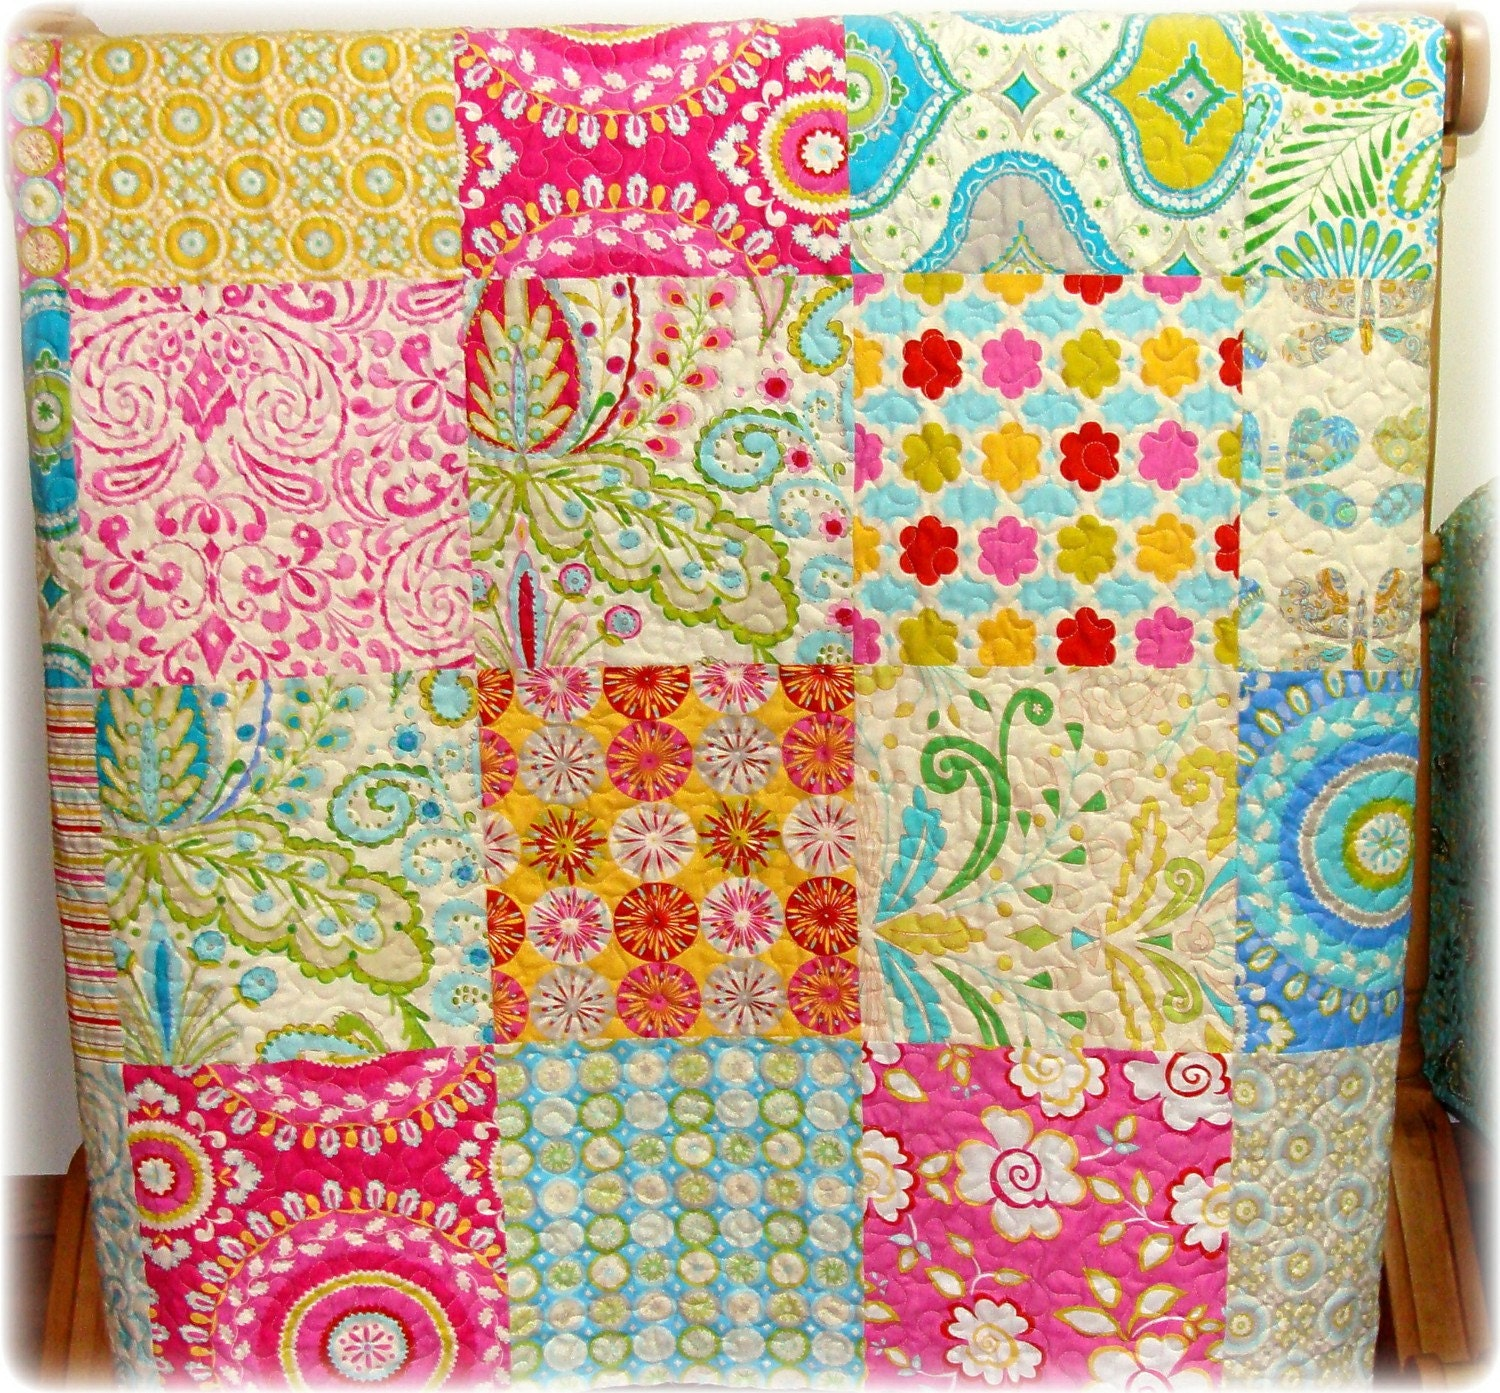 Kumari garden picnic quilt by carlenewestberg on etsy for Kumari garden fabric by dena designs